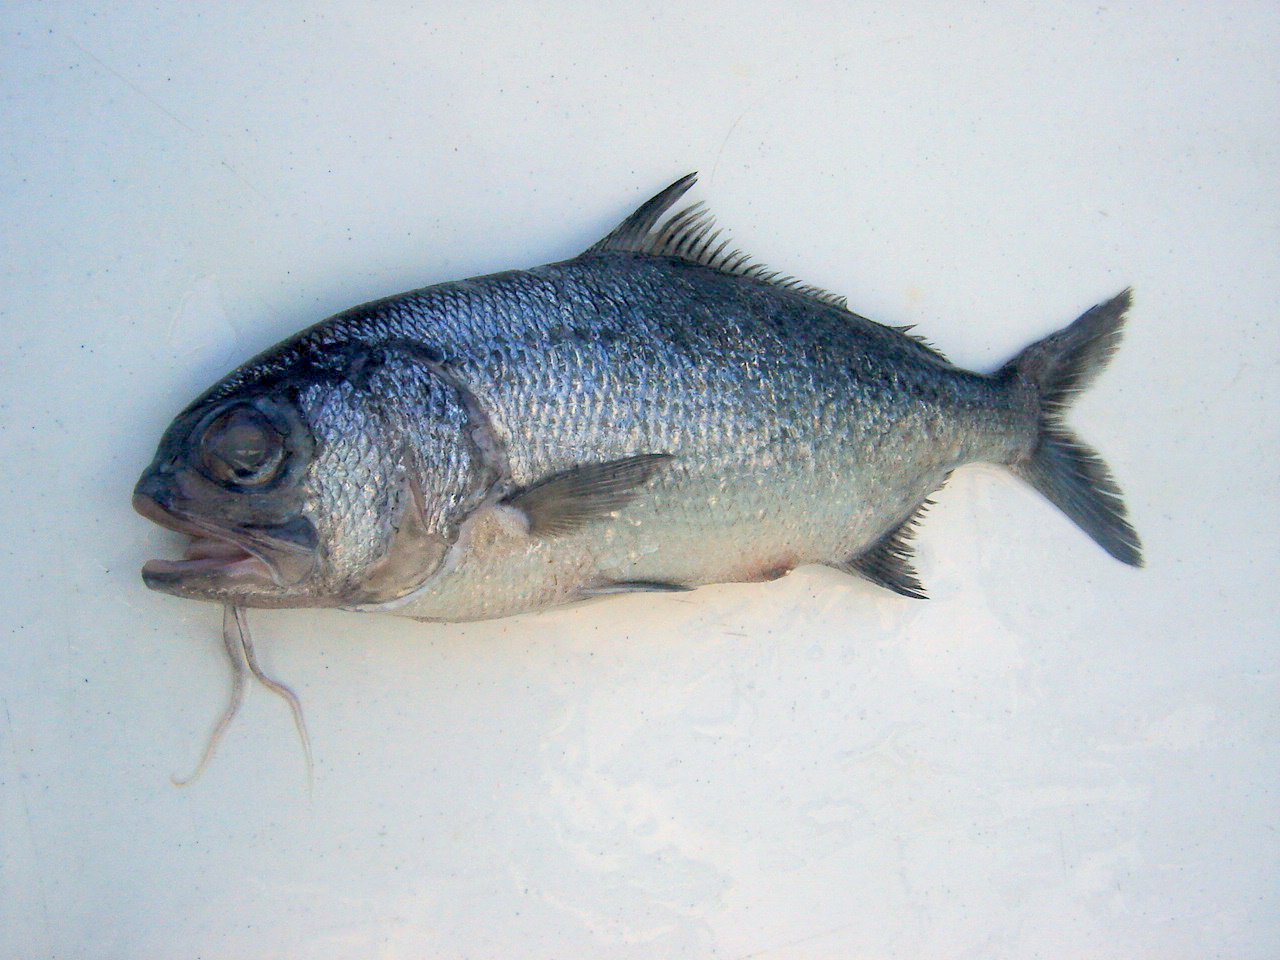 Pictures of Beard fish